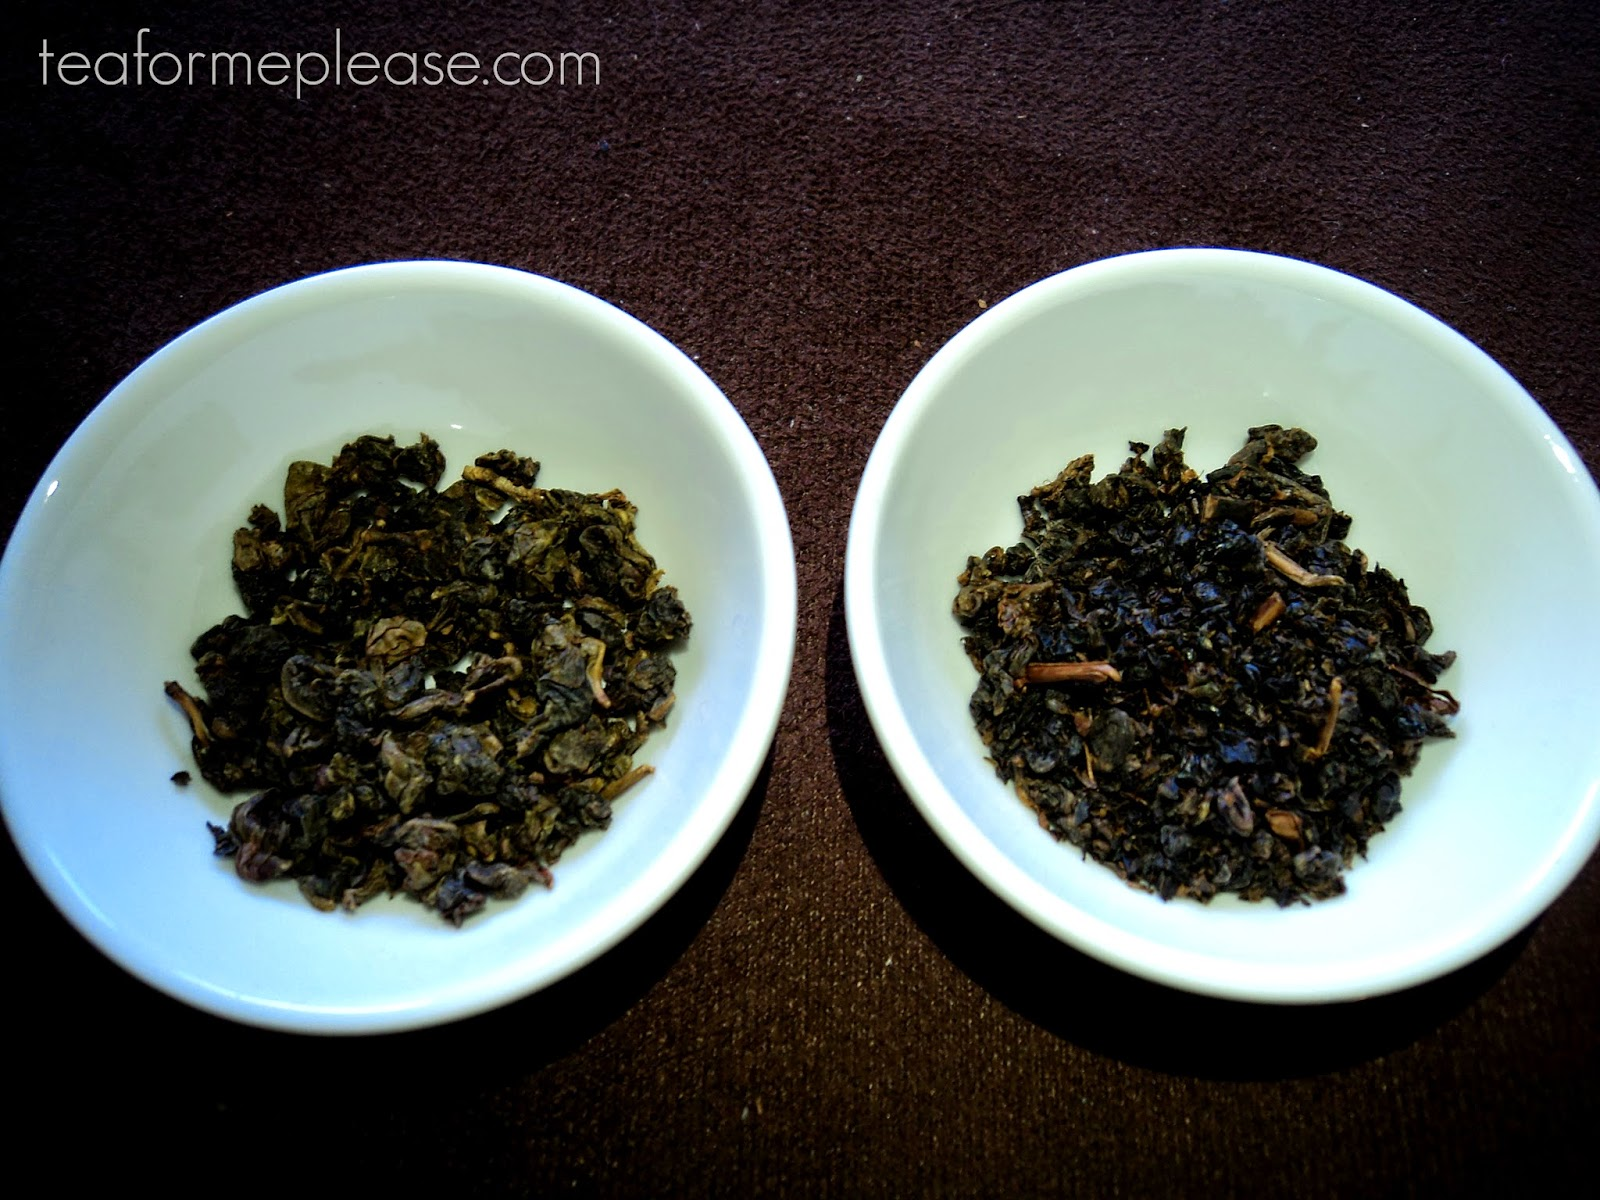 Global Tea Hut June 2014 - Mi Xiang Oolong and Red Tea